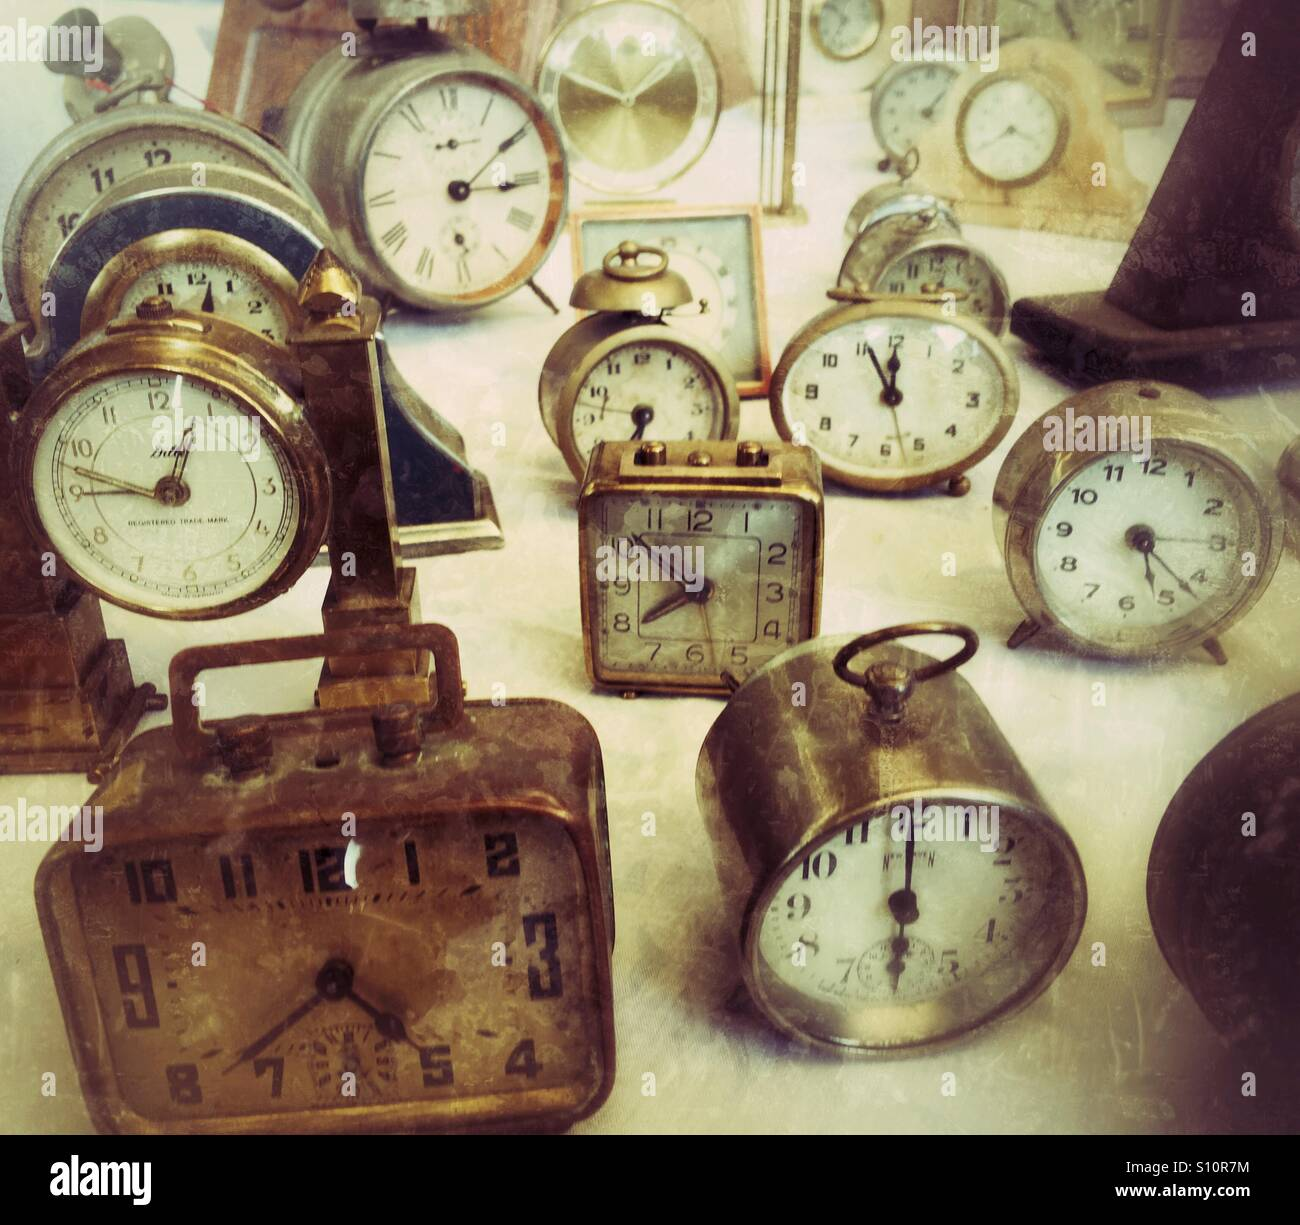 Time keeping - Stock Image